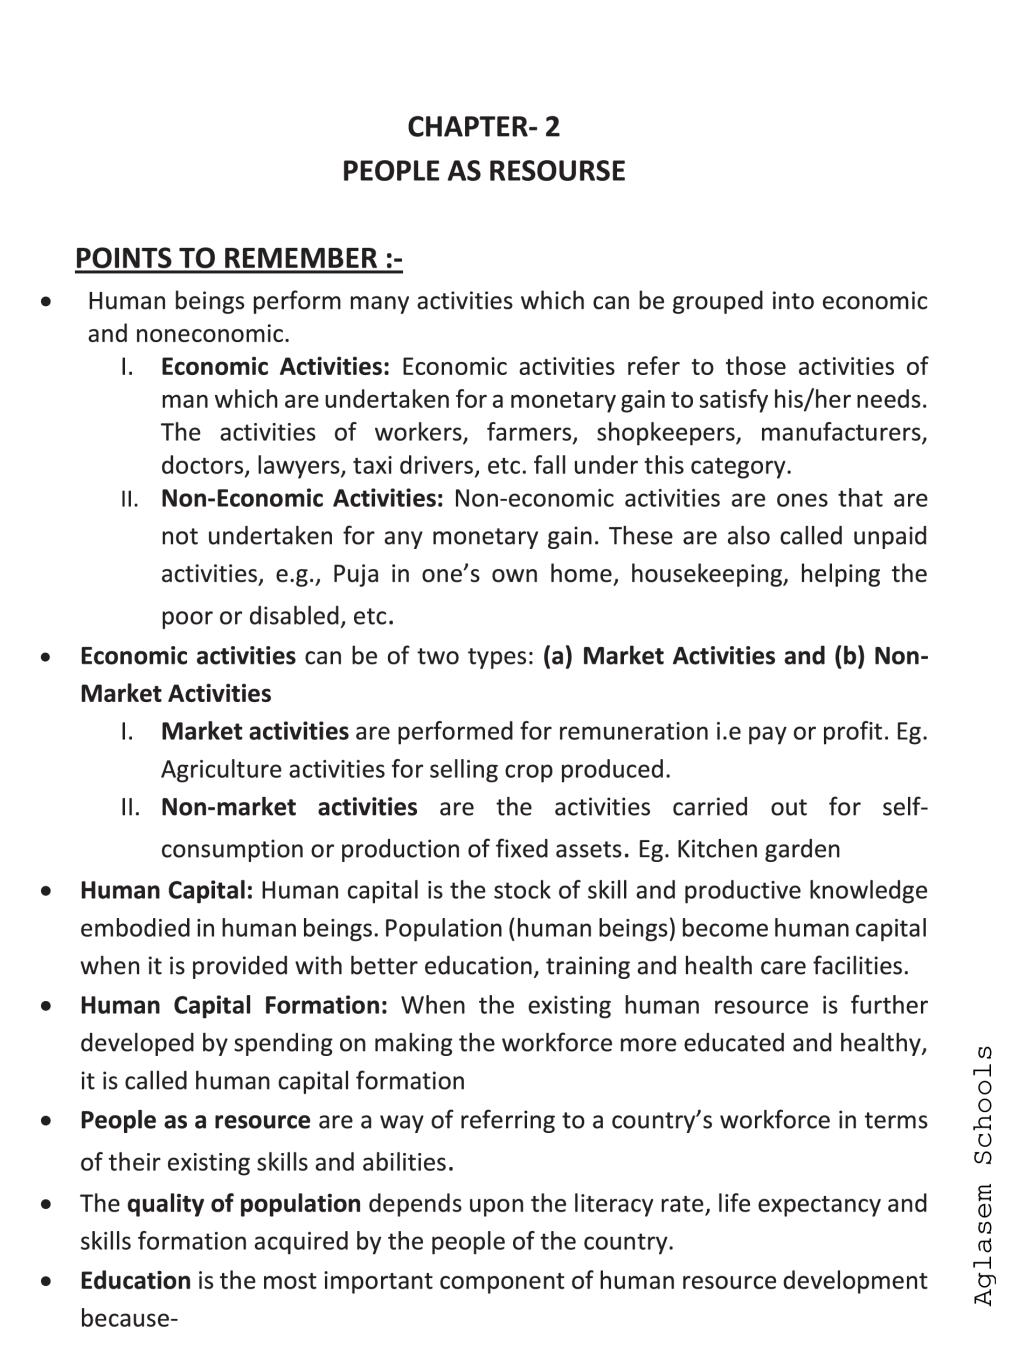 Class 9 Social Science (Economics) People as Resource Notes